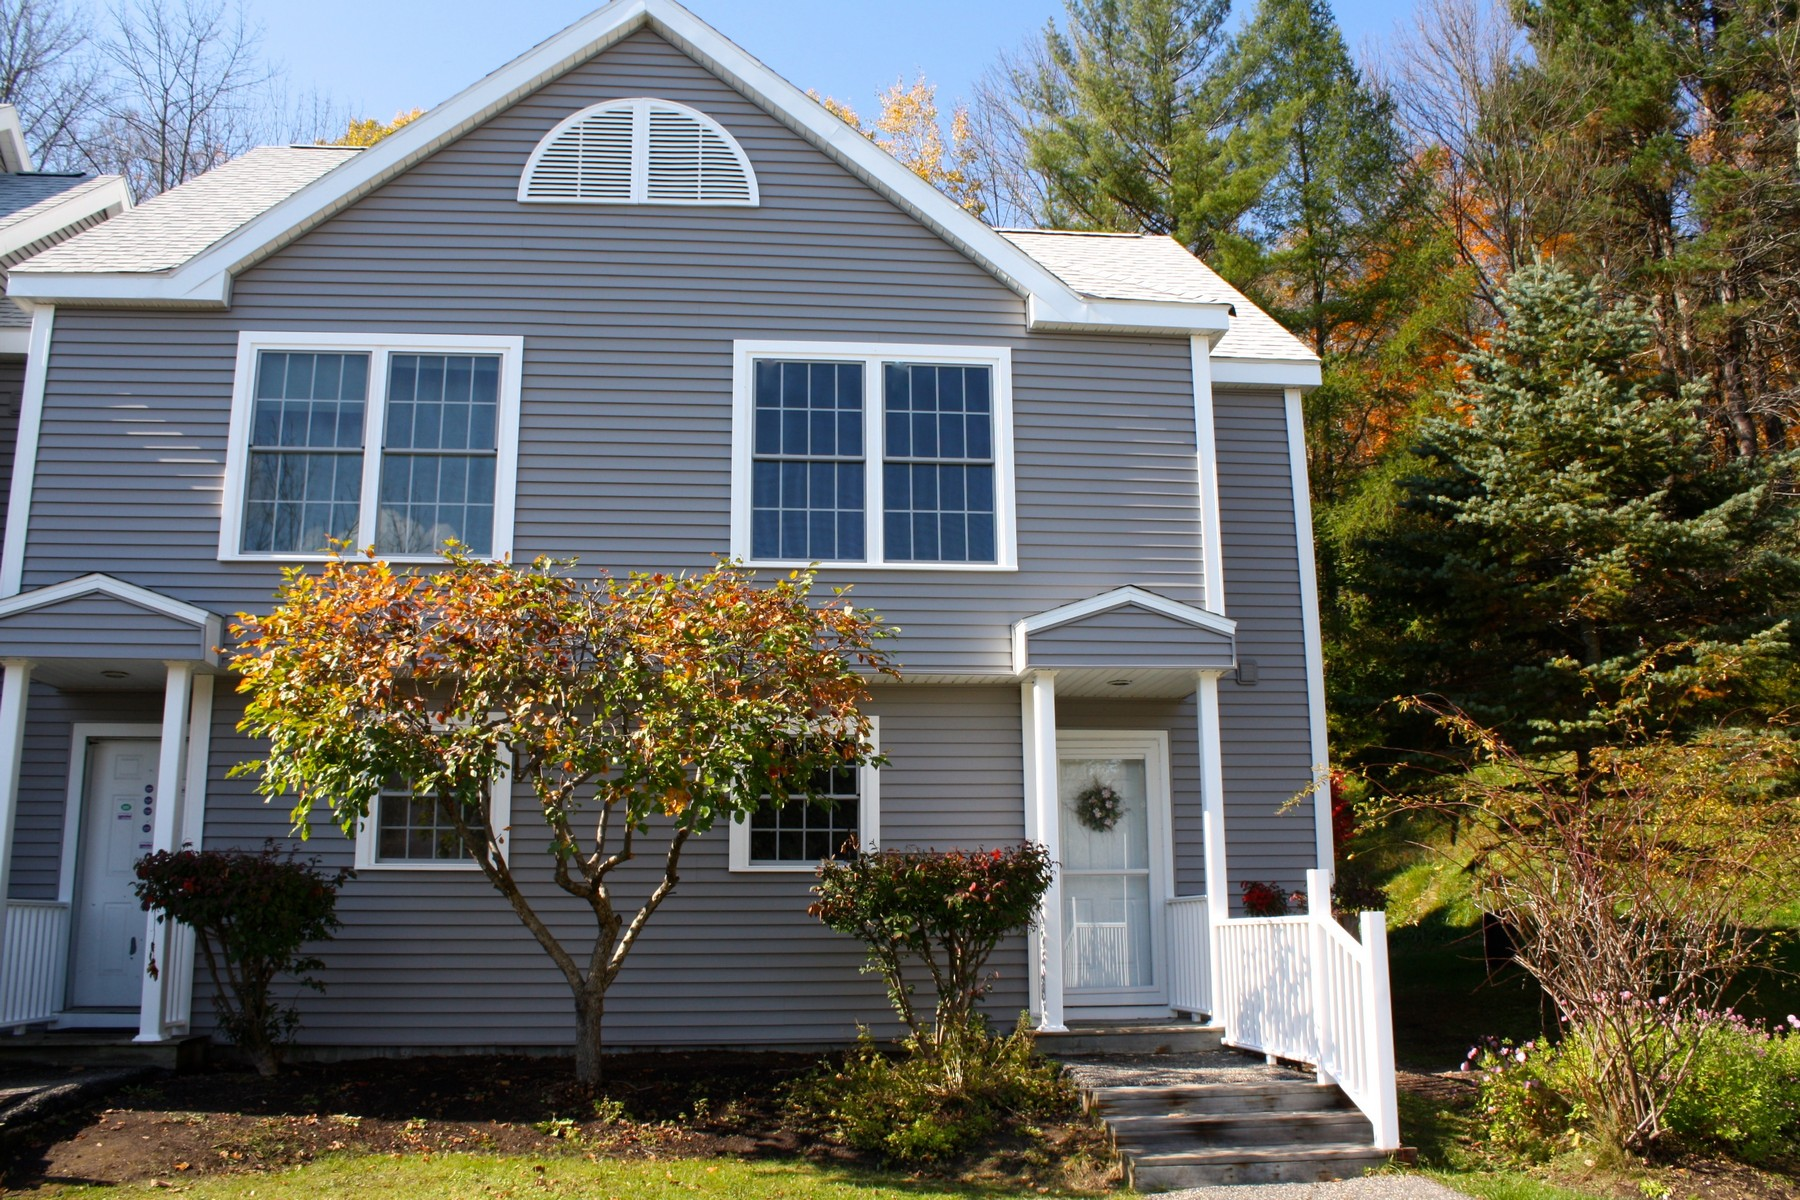 Condominium for Sale at End Unit Condo with Great Location 15807 Riverside Townhouses Rd 7 Manchester, Vermont 05255 United States